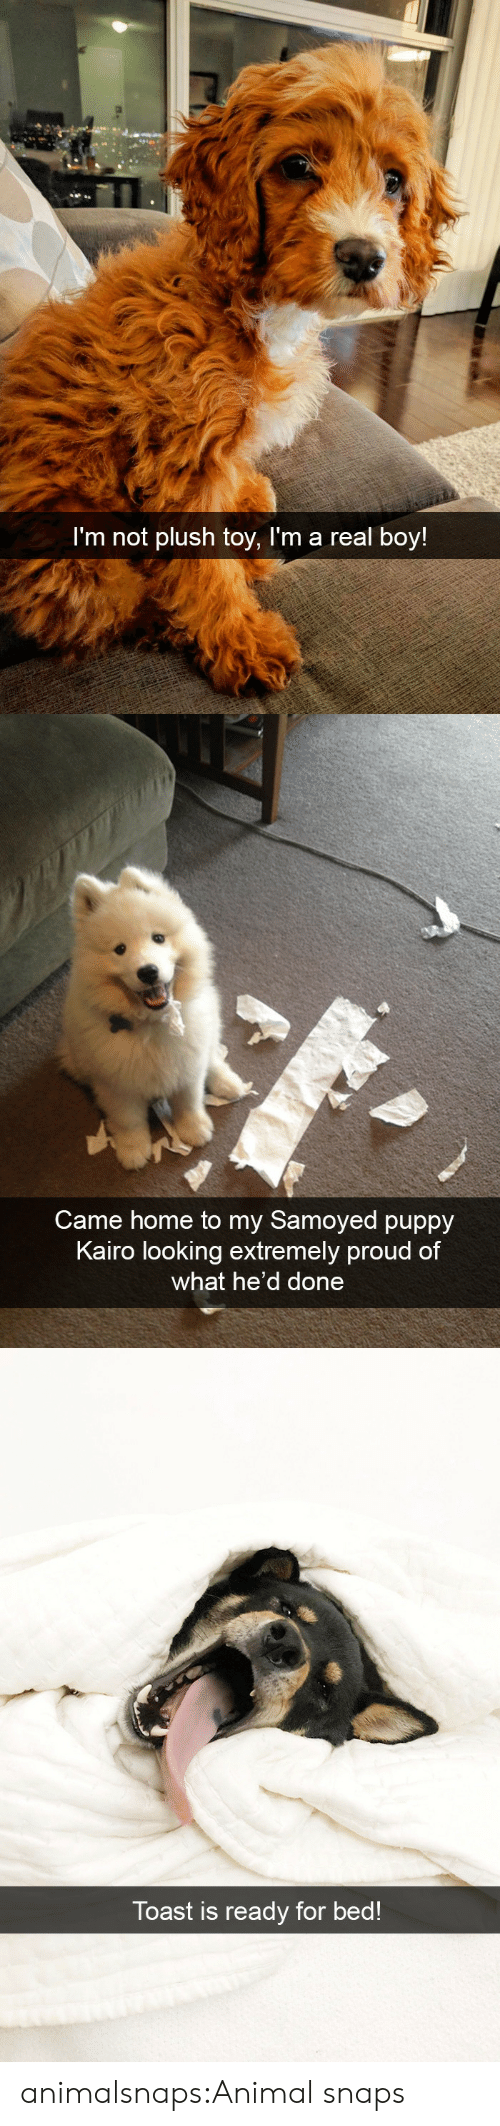 Target, Tumblr, and Animal: I'm not plush toy, l'm a real boy!   Came home to my Samoyed puppy  Kairo looking extremely proud of  what he'd done   Toast is ready for bed! animalsnaps:Animal snaps